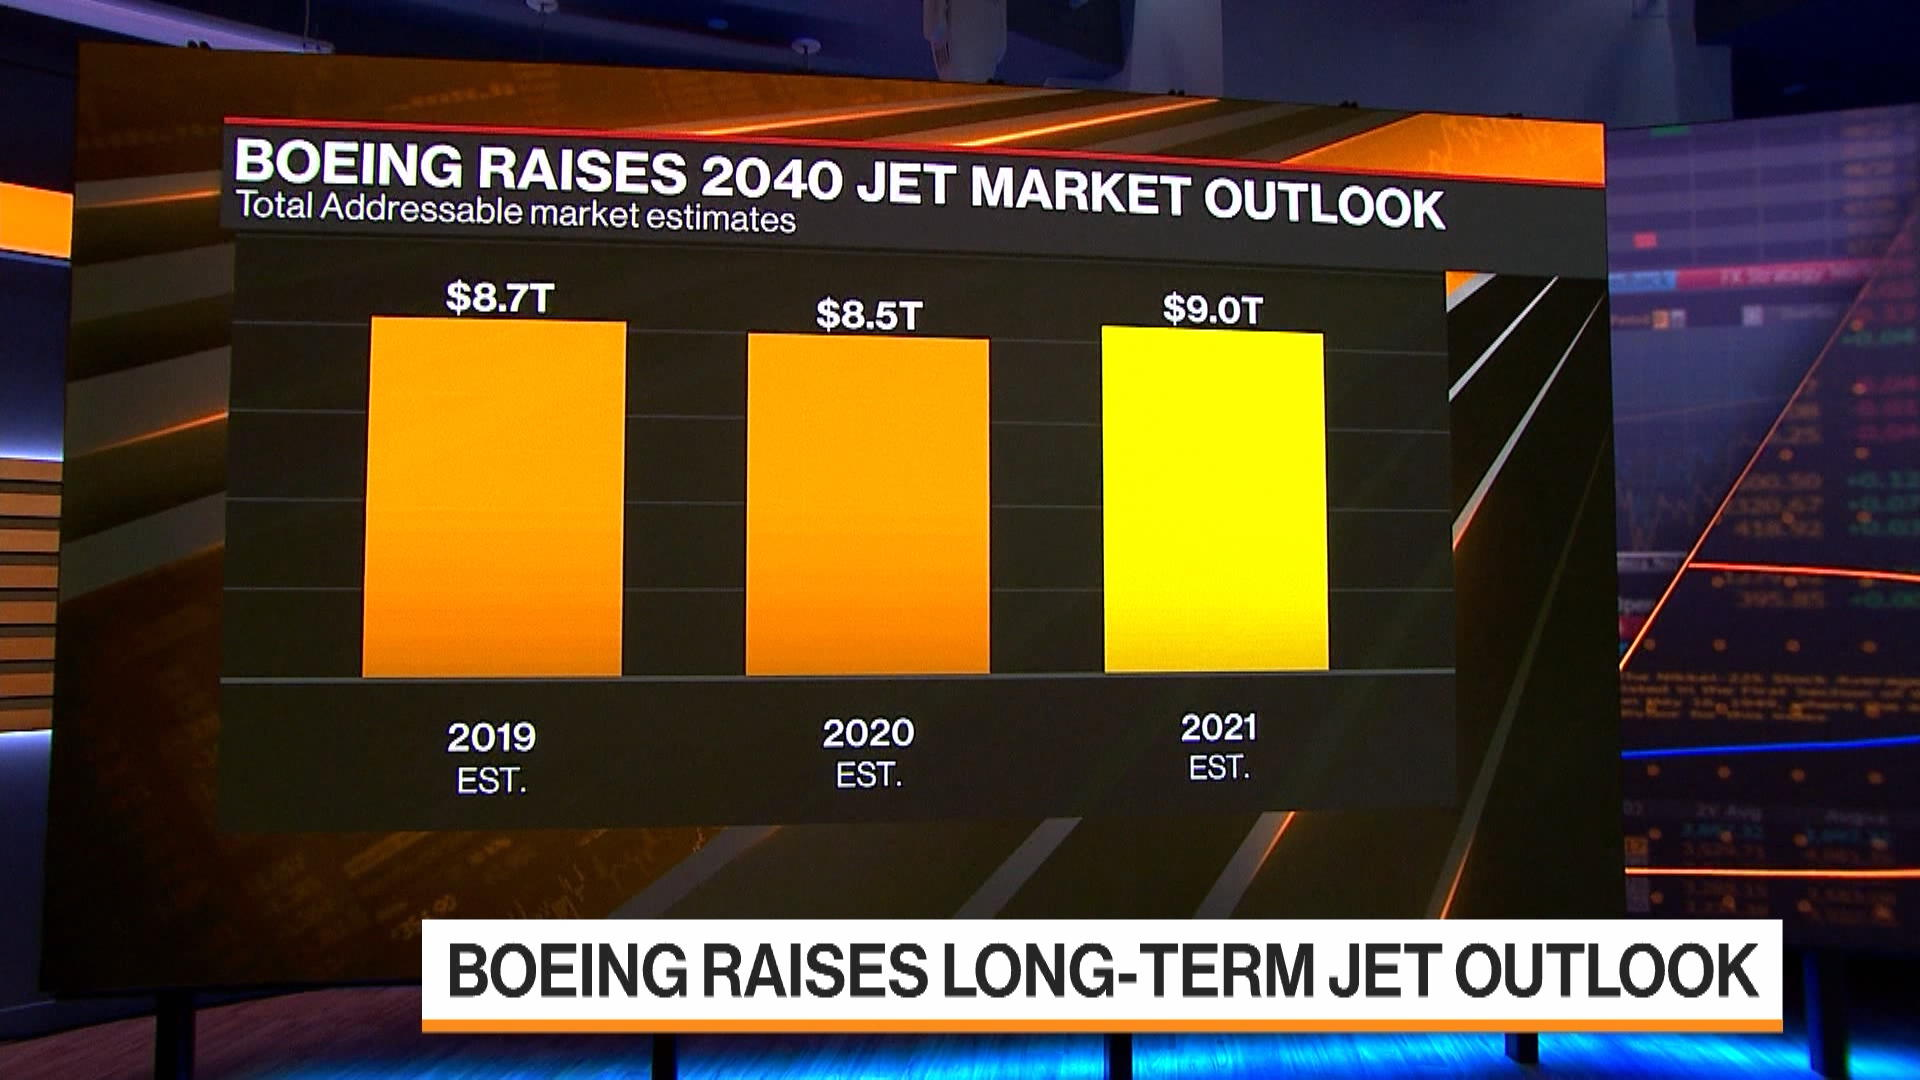 Boeing is Bullish on Future of Airline Business